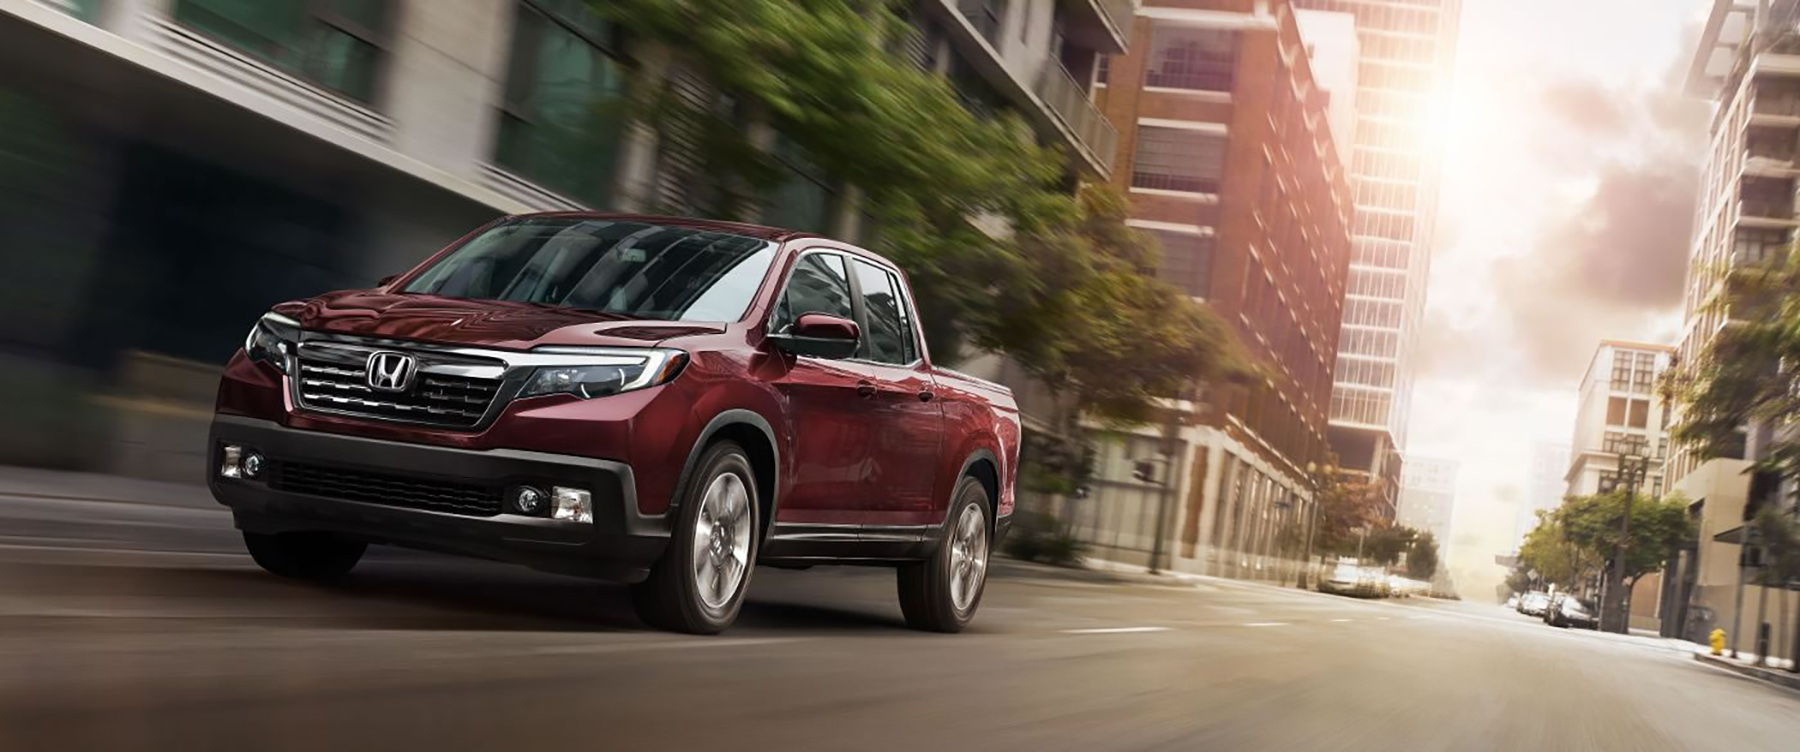 2017 Honda Ridgeline Trim Levels Boat Towing With Hampton Roads Drivers Searching For A Versatile And Dependable New Pickup Truck The Have You Covered